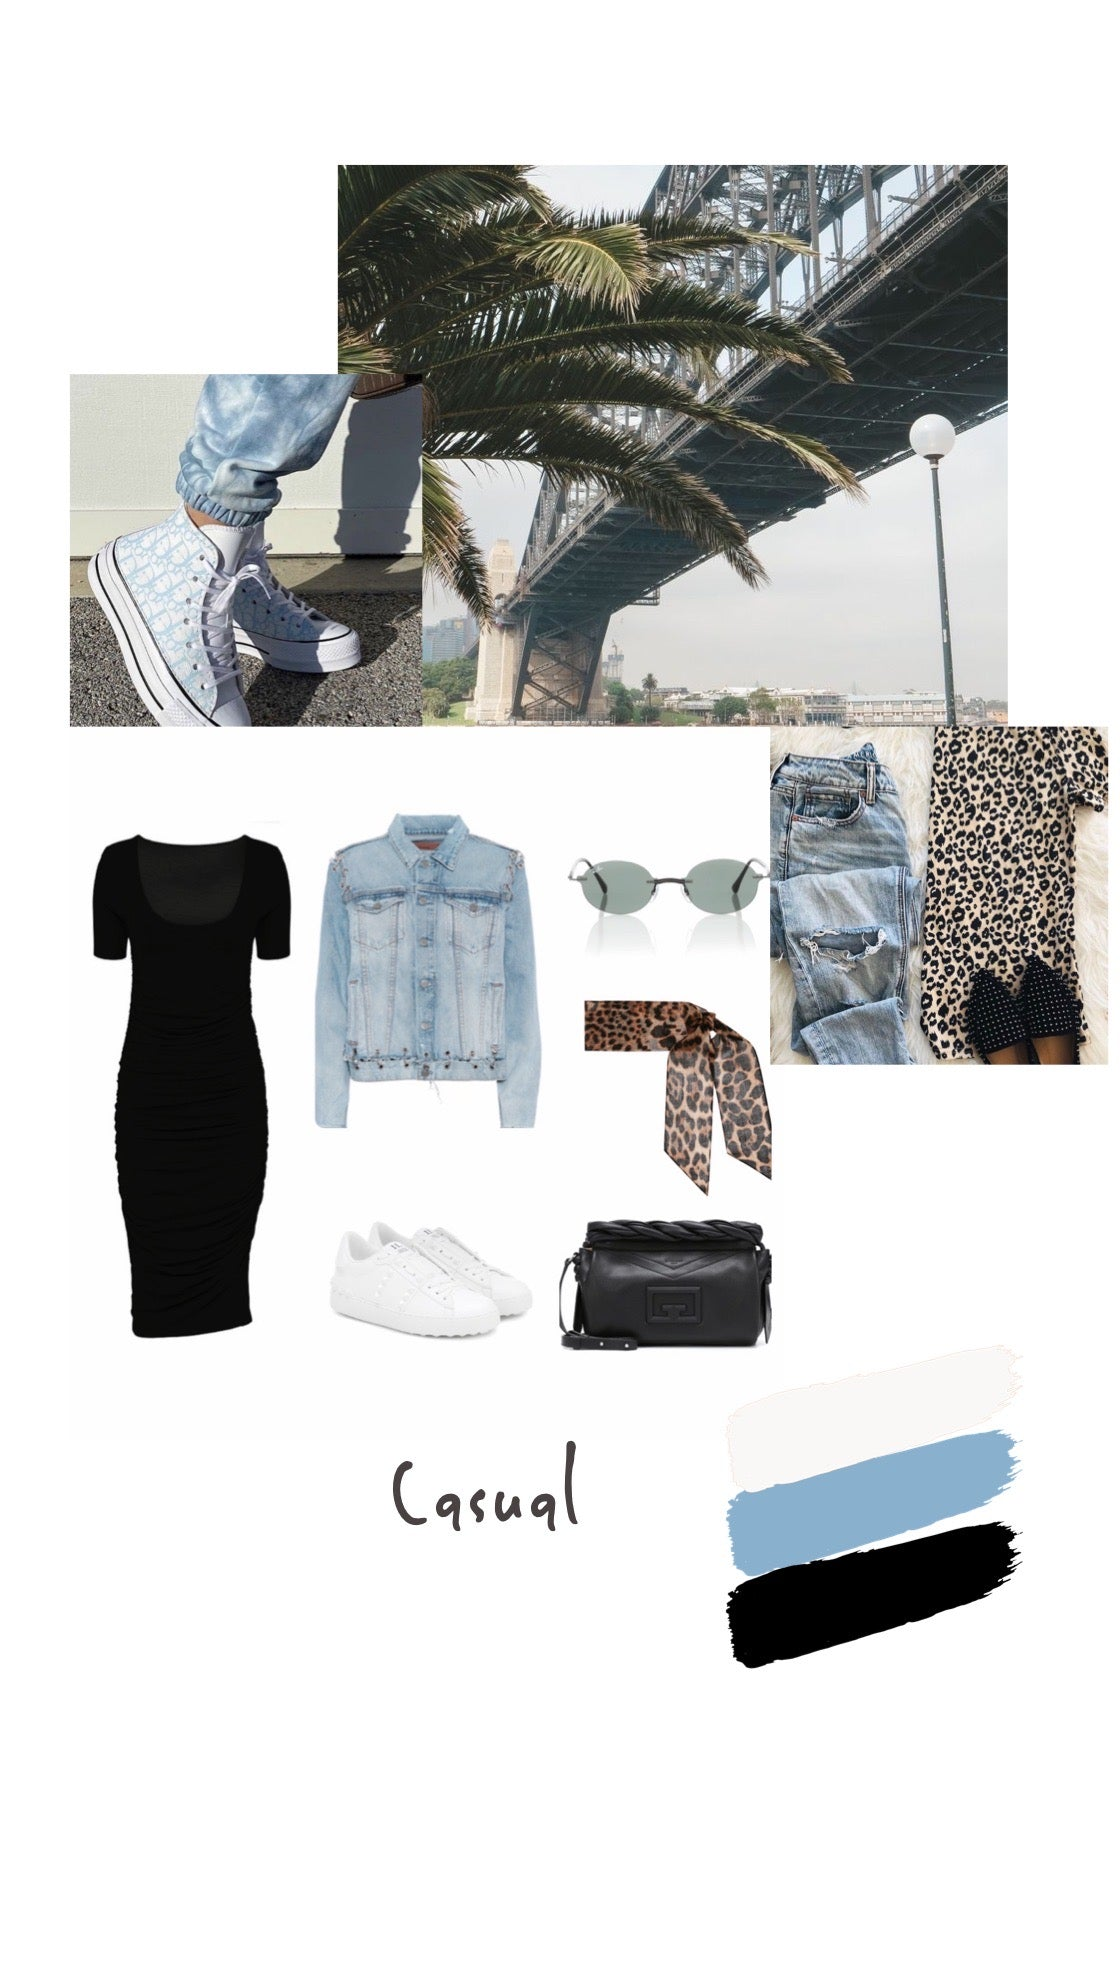 Embodycon style board casual